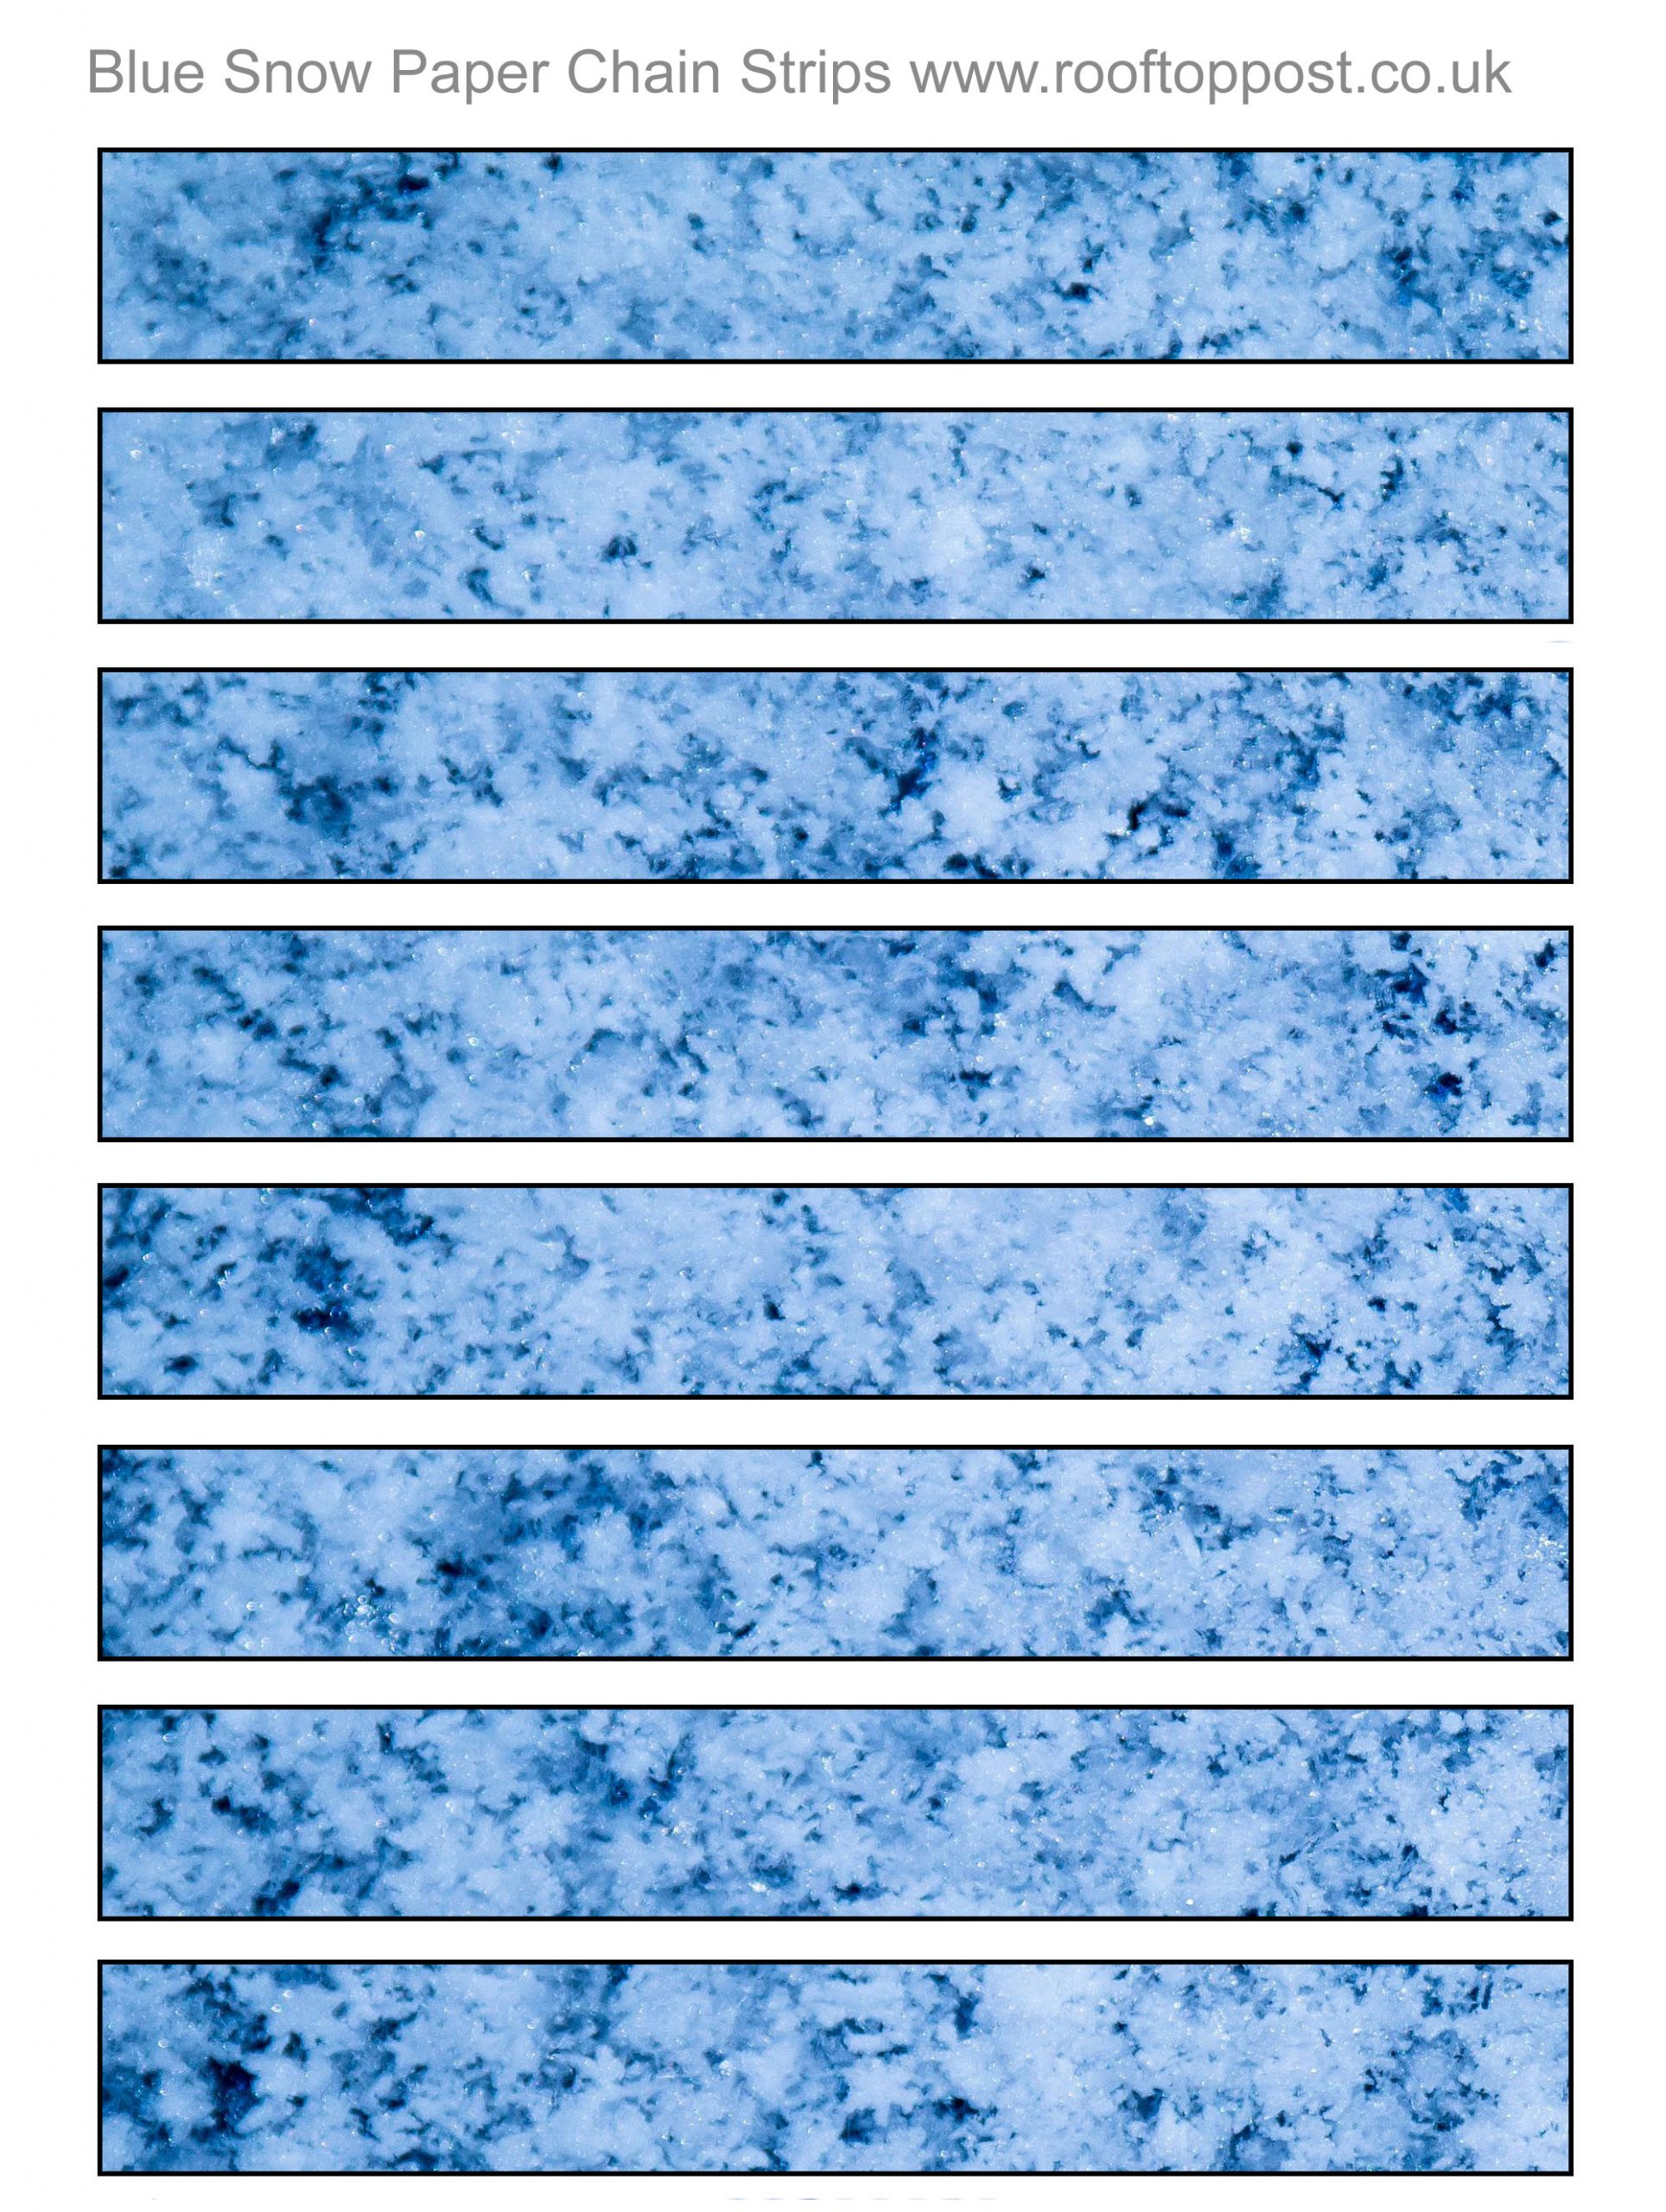 Printable paper chain strips with a blue snow design